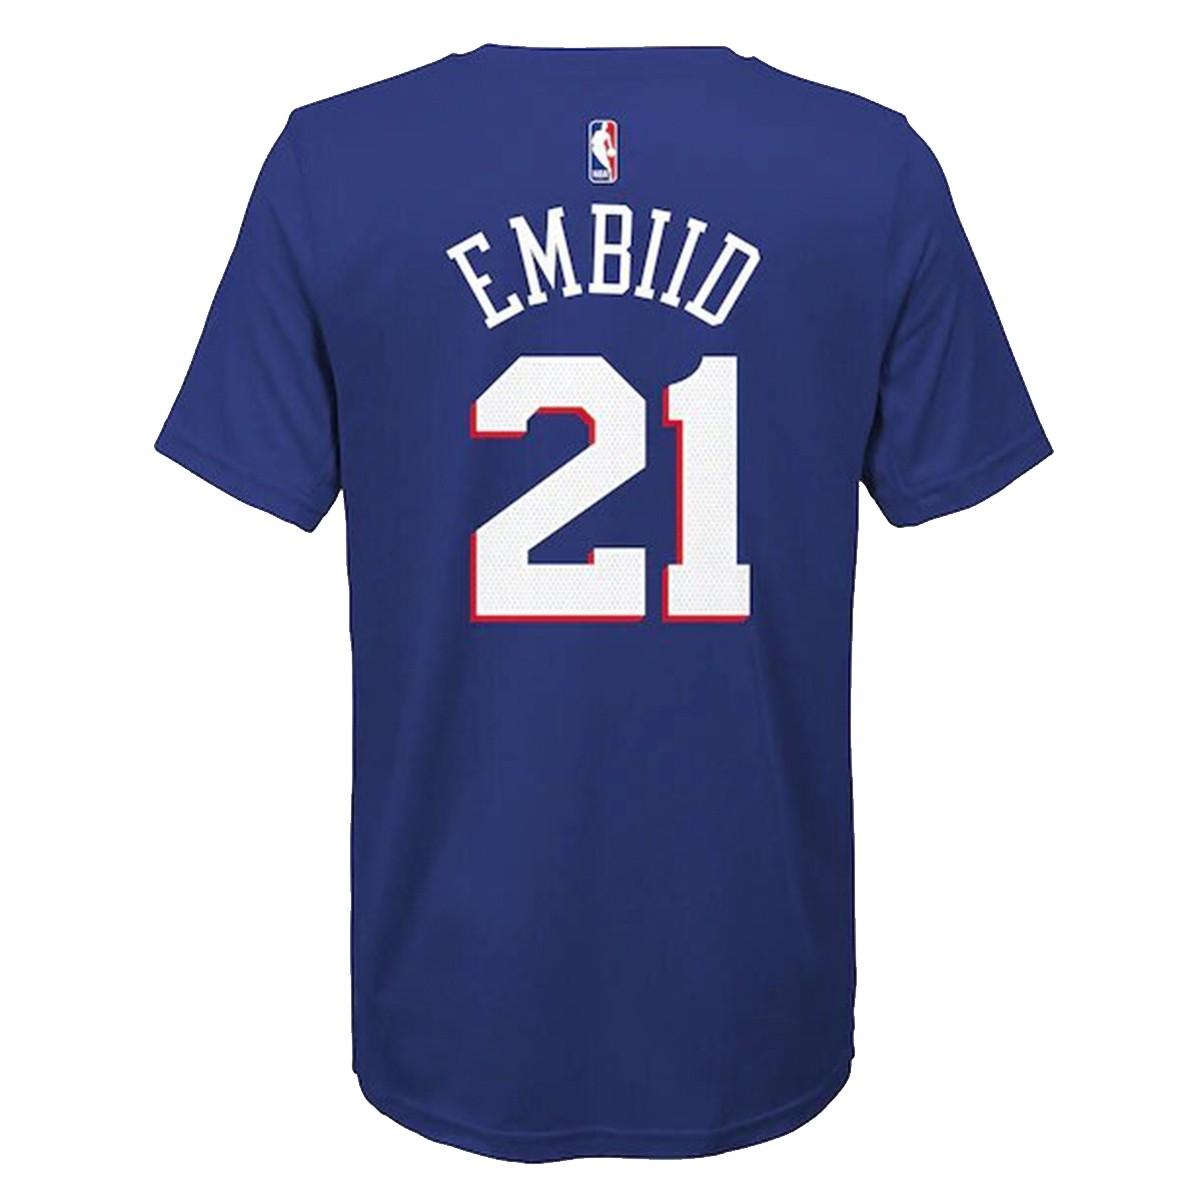 Nike Junior NBA Sixers Nick Name Tee Embiid 'Icon Edition'-EZ2B711F1-PSJEI